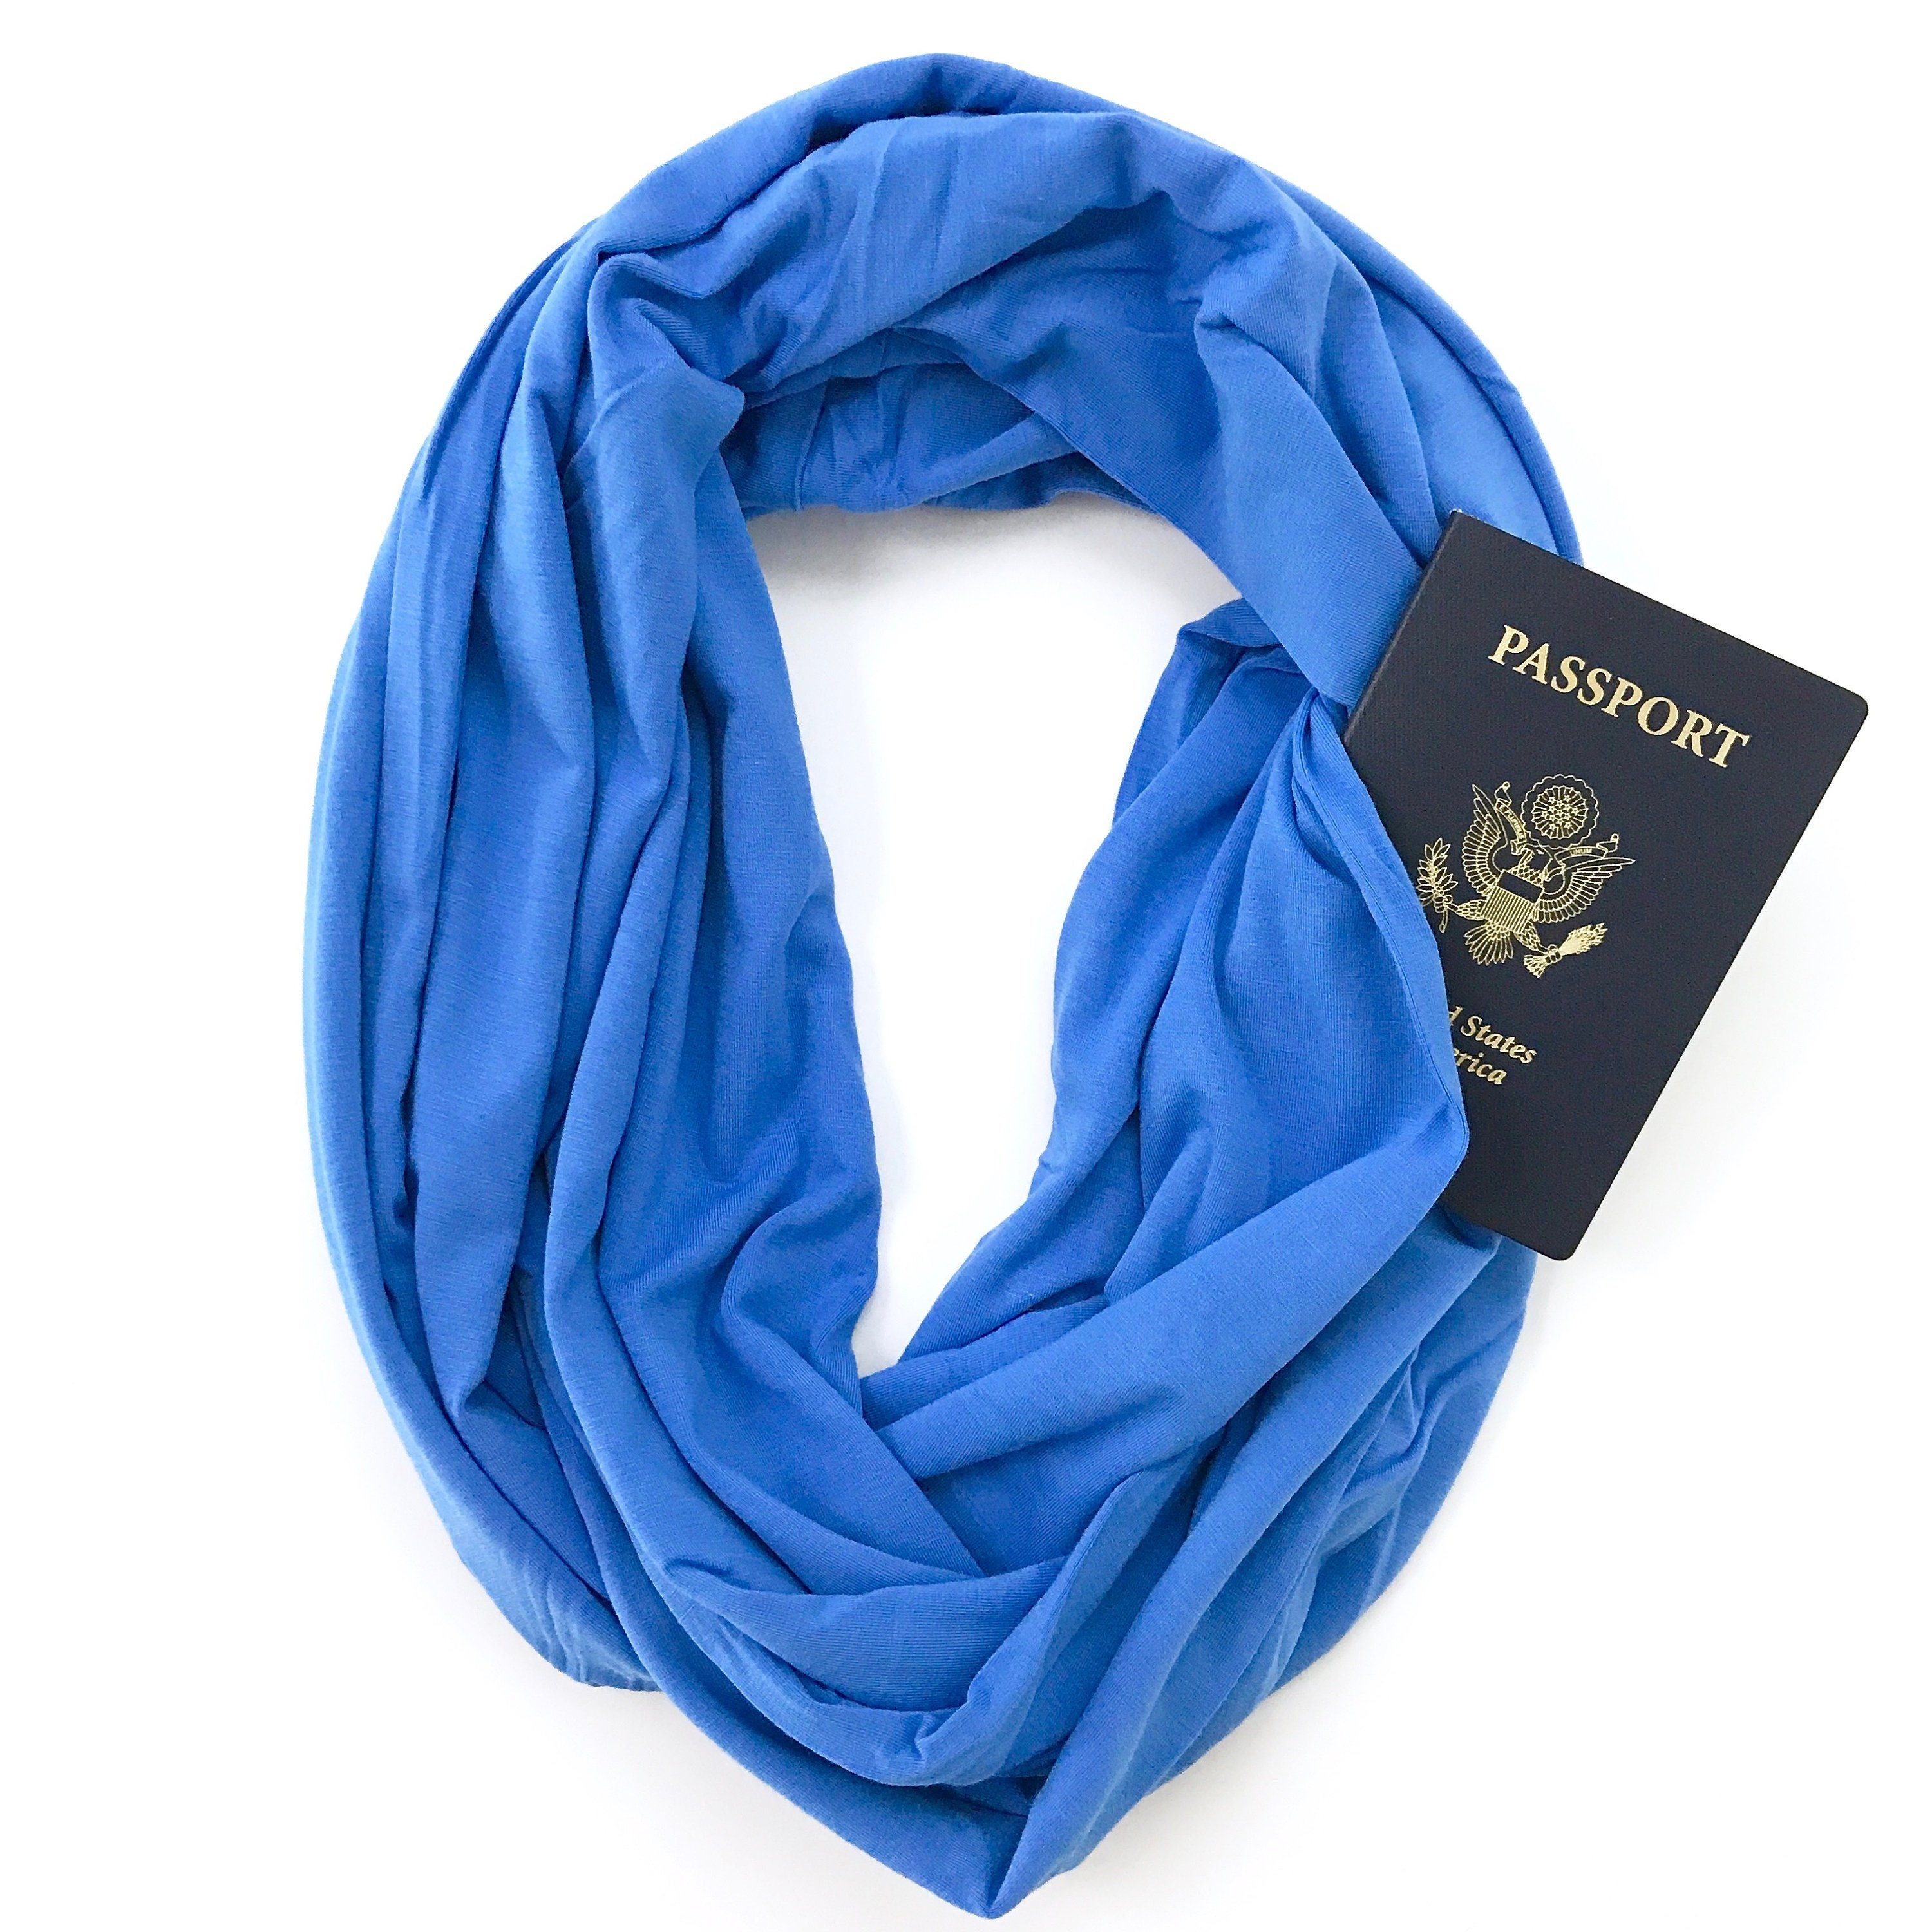 Blue bamboo infinity scarf with pocket travel gift etsy for Travel scarf